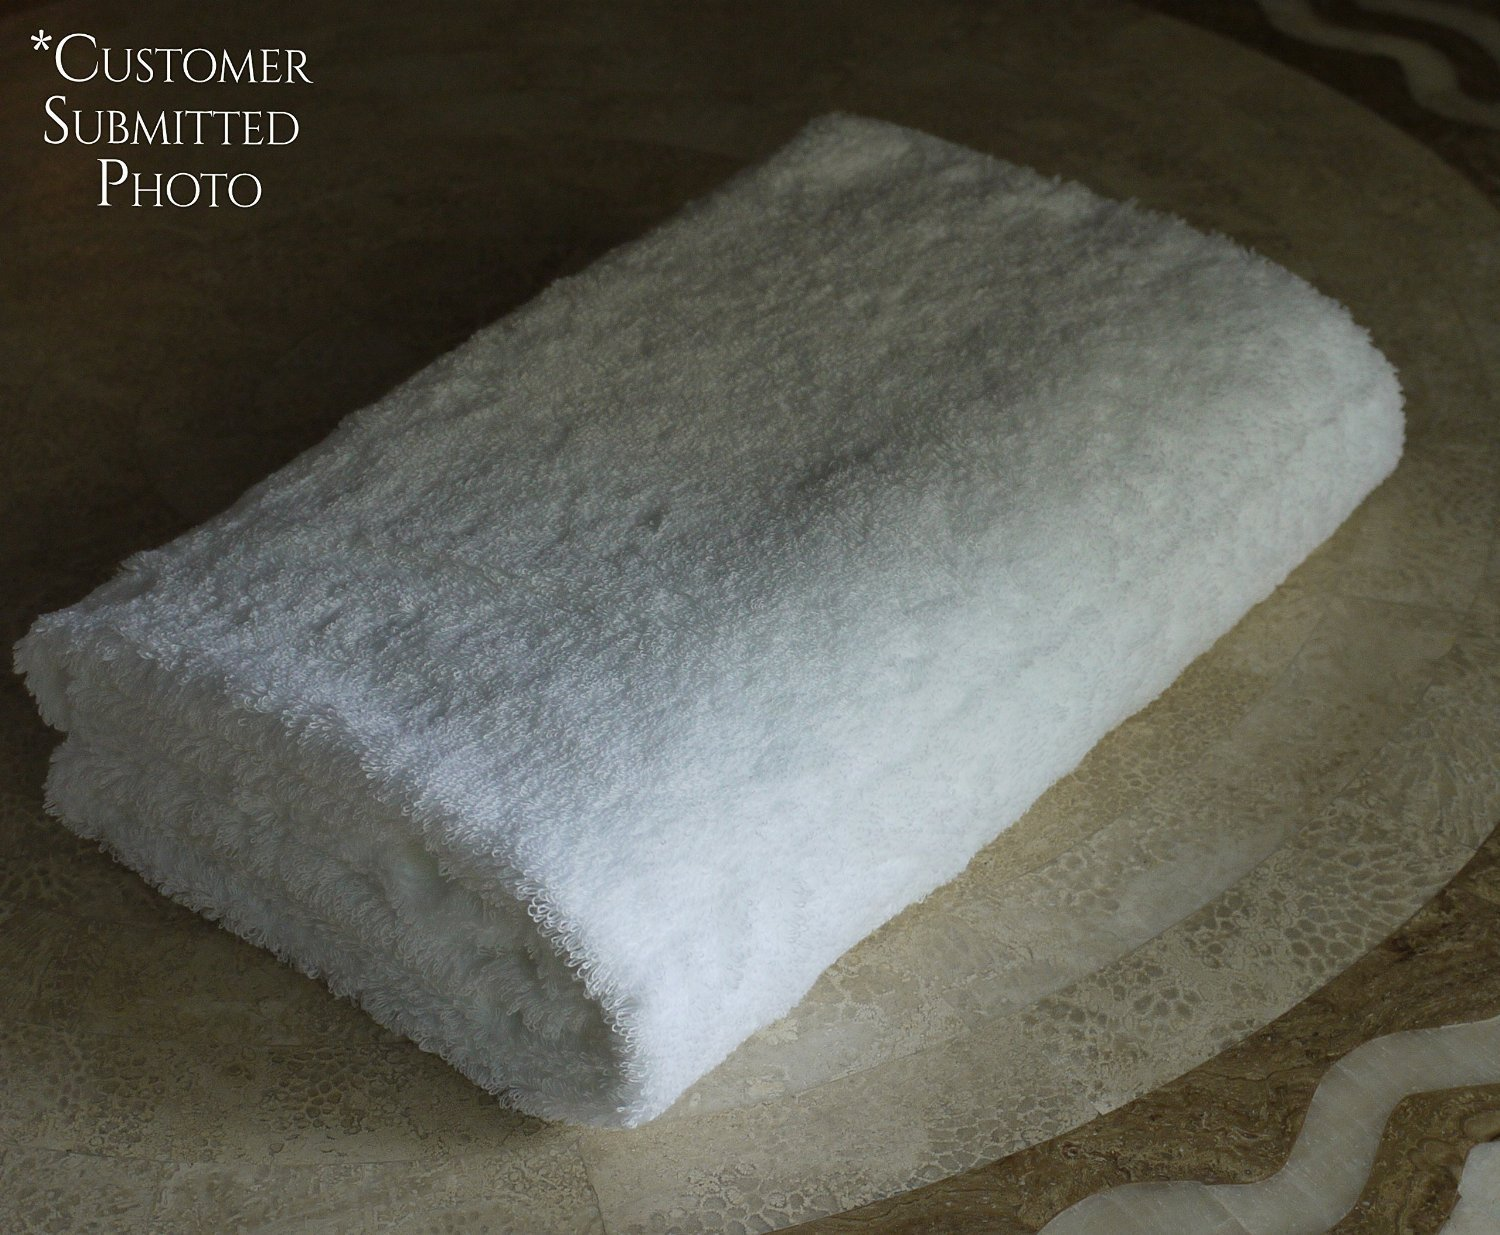 Winter Park Towel - Luxury White Bath Towels Egyptian Cotton